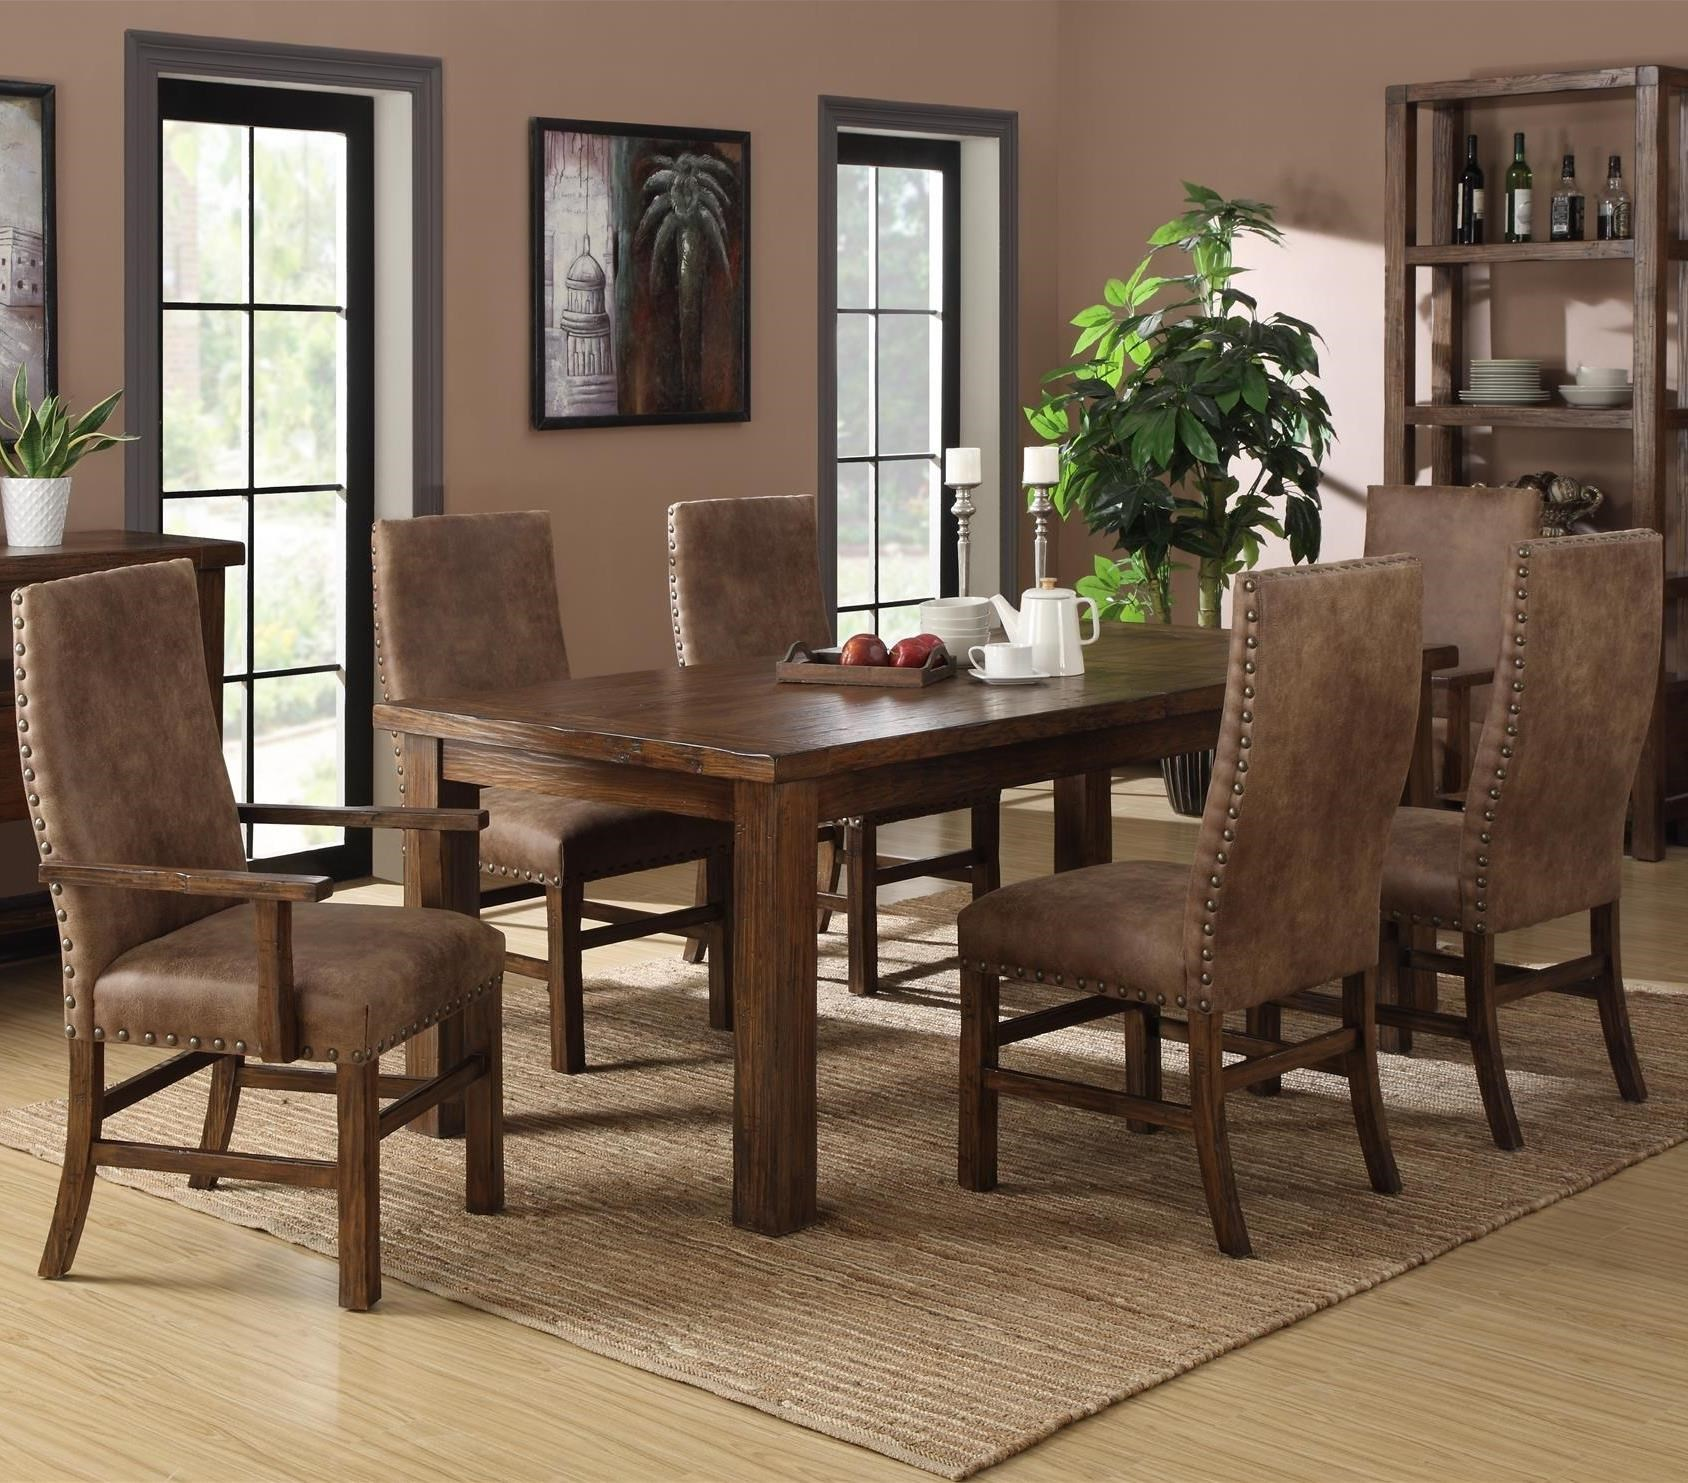 Charming Emerald Chambers Creek 7 Piece Dining Set With Upholstered Chairs